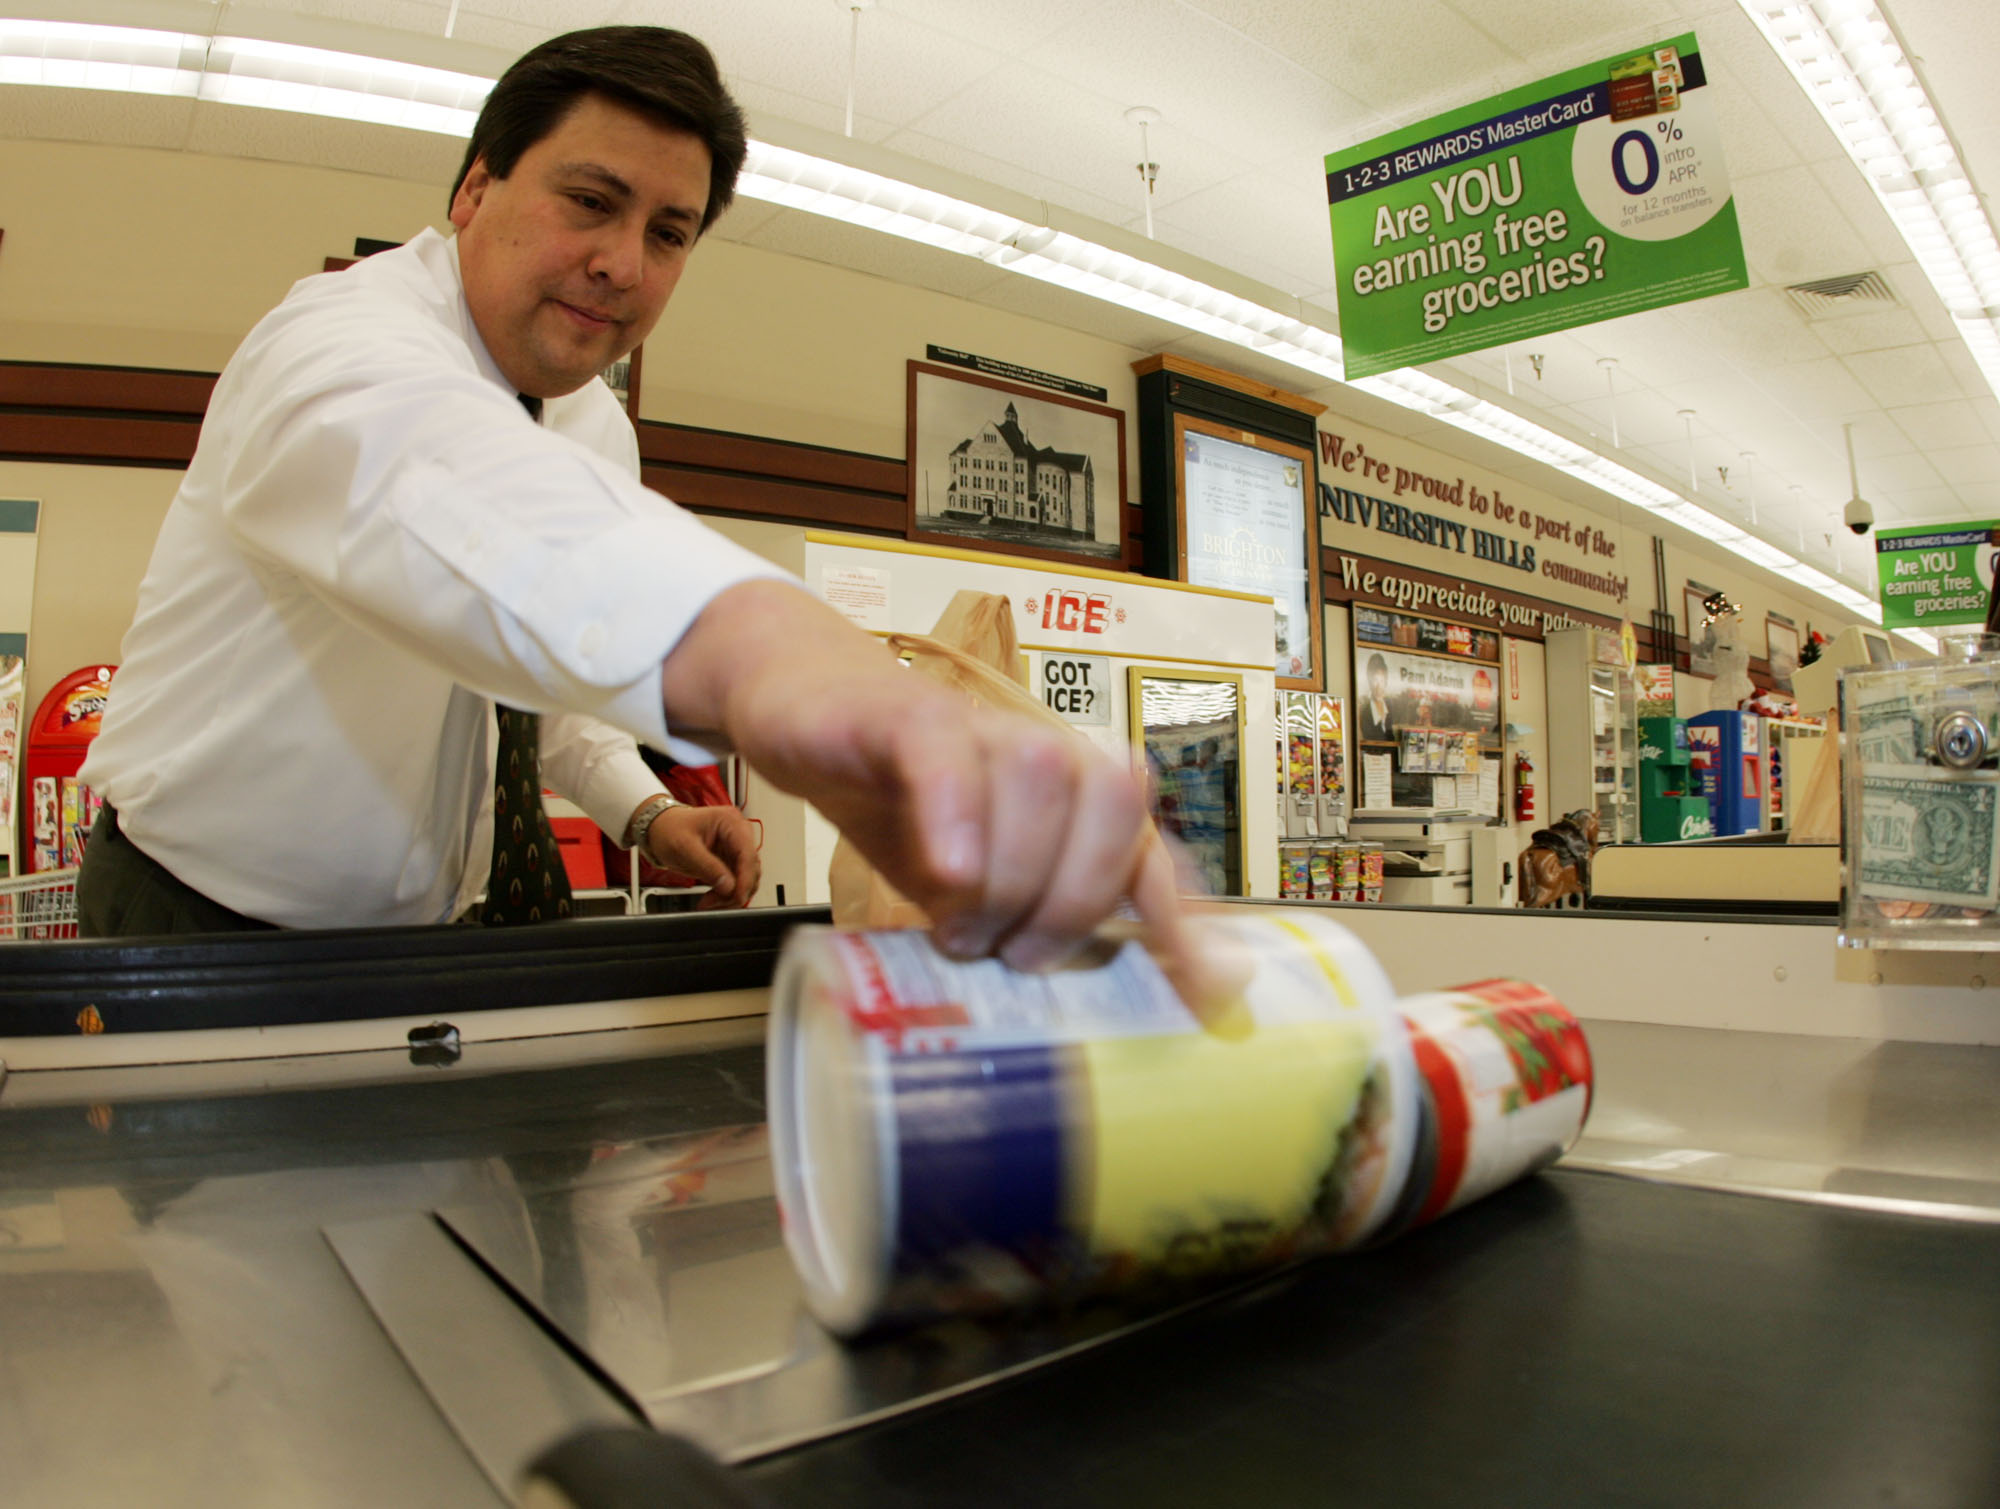 <p>Les Gomez, store manager of a King Soopers in southeast Denver, grabs an item off the converyor belt as he bags groceries for a customer in a file photo.</p>